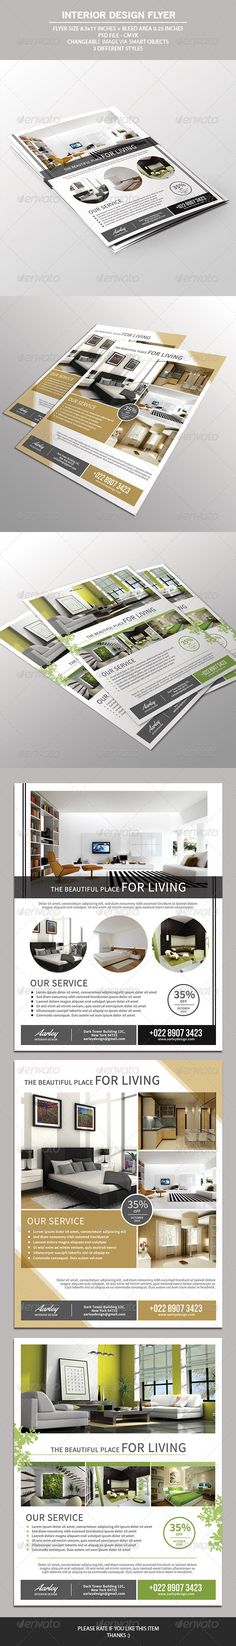 Simple Interior Design Flyer